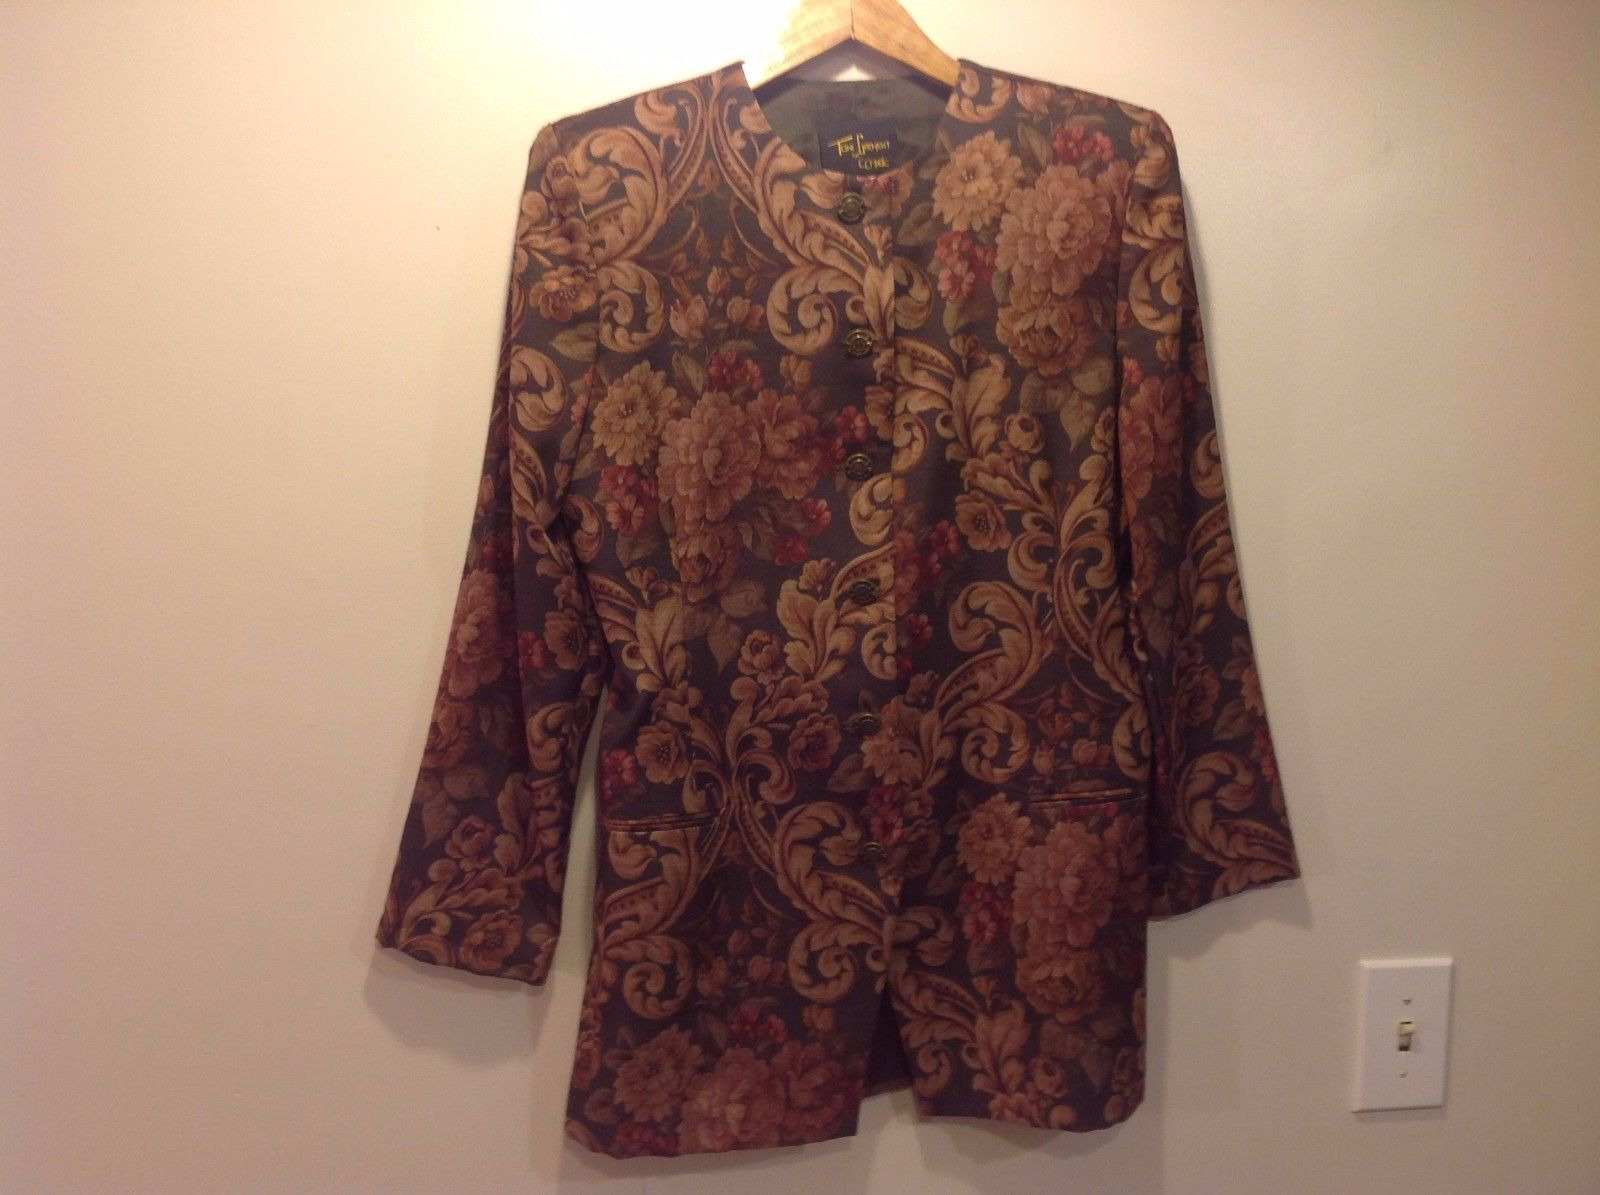 Floral Tapestry French Style Toni Garment Women's Jacket Button Up Size 6 USA